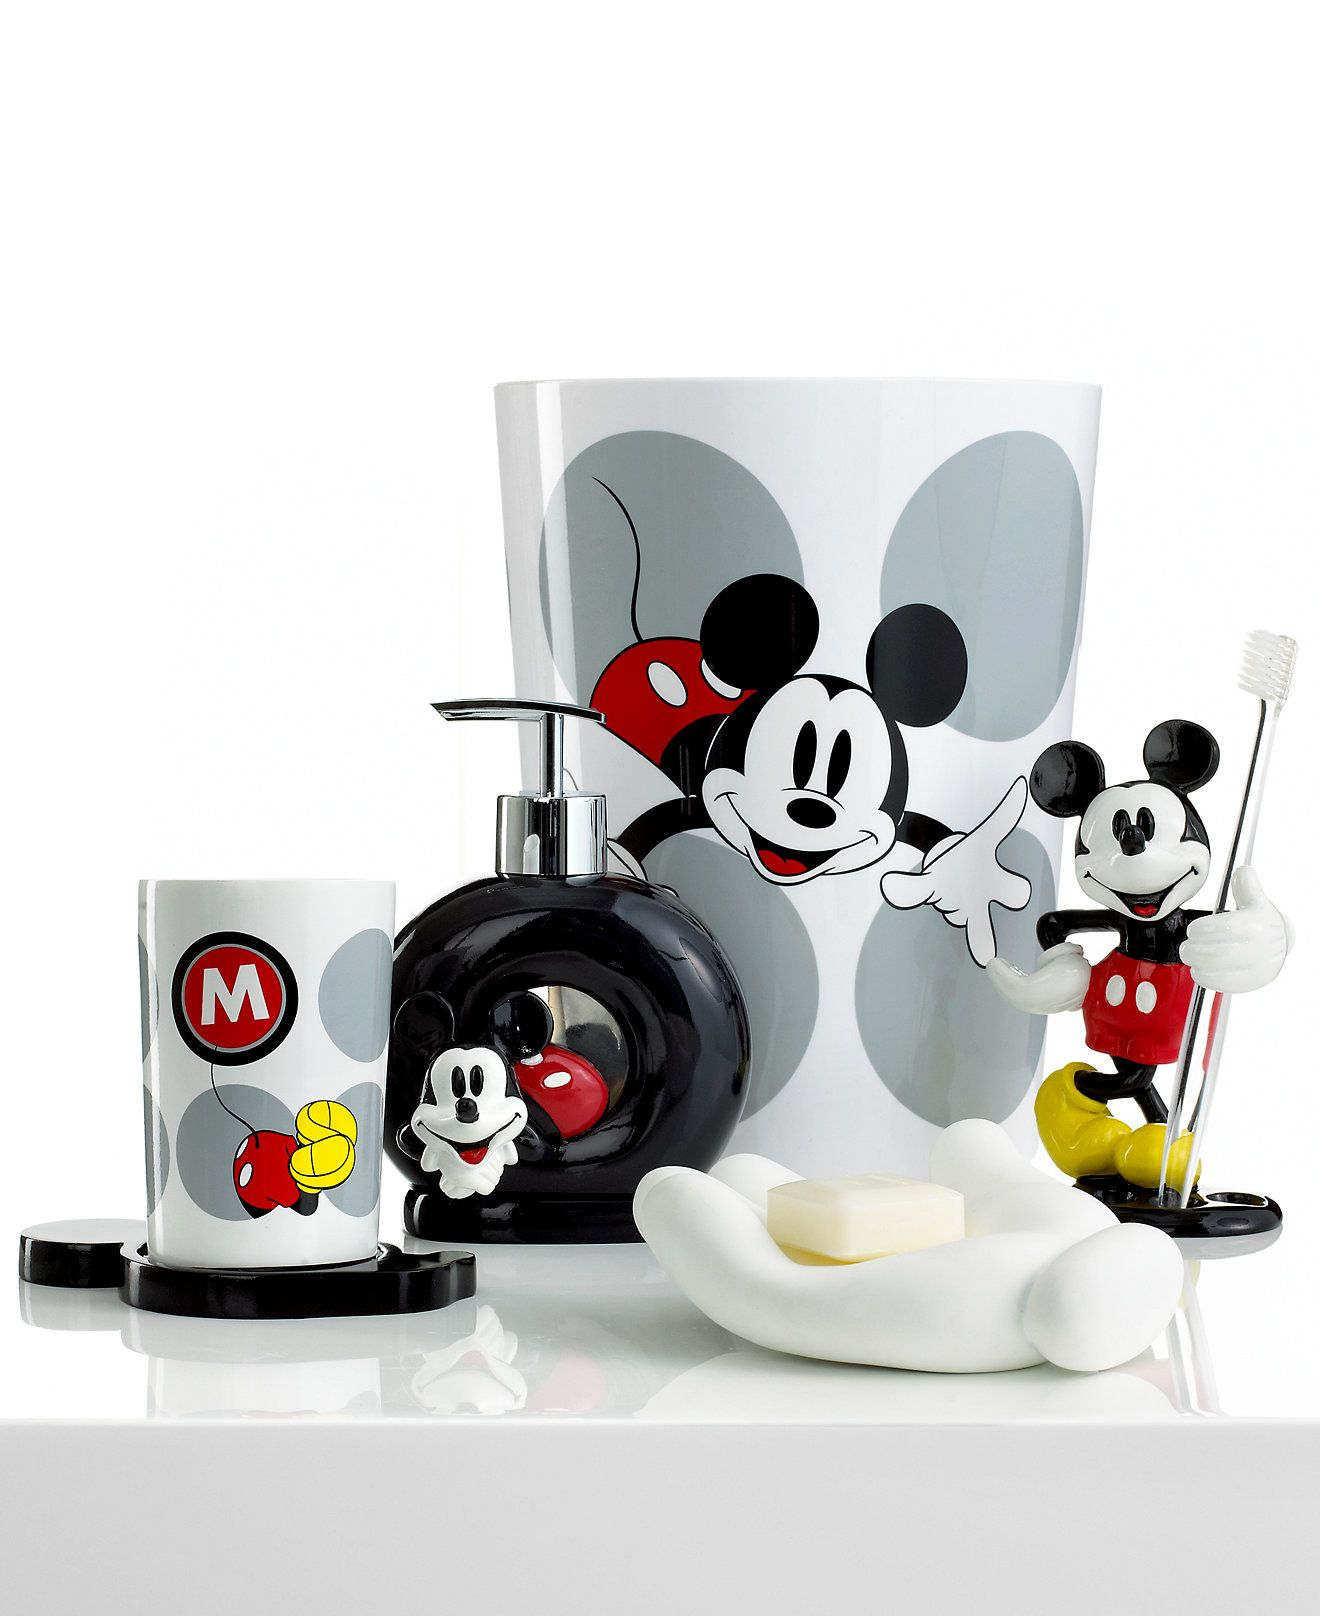 Mickey Mouse Kitchen Appliances Disney Bath Accessories Disney Mickey Mouse Toothbrush Holder